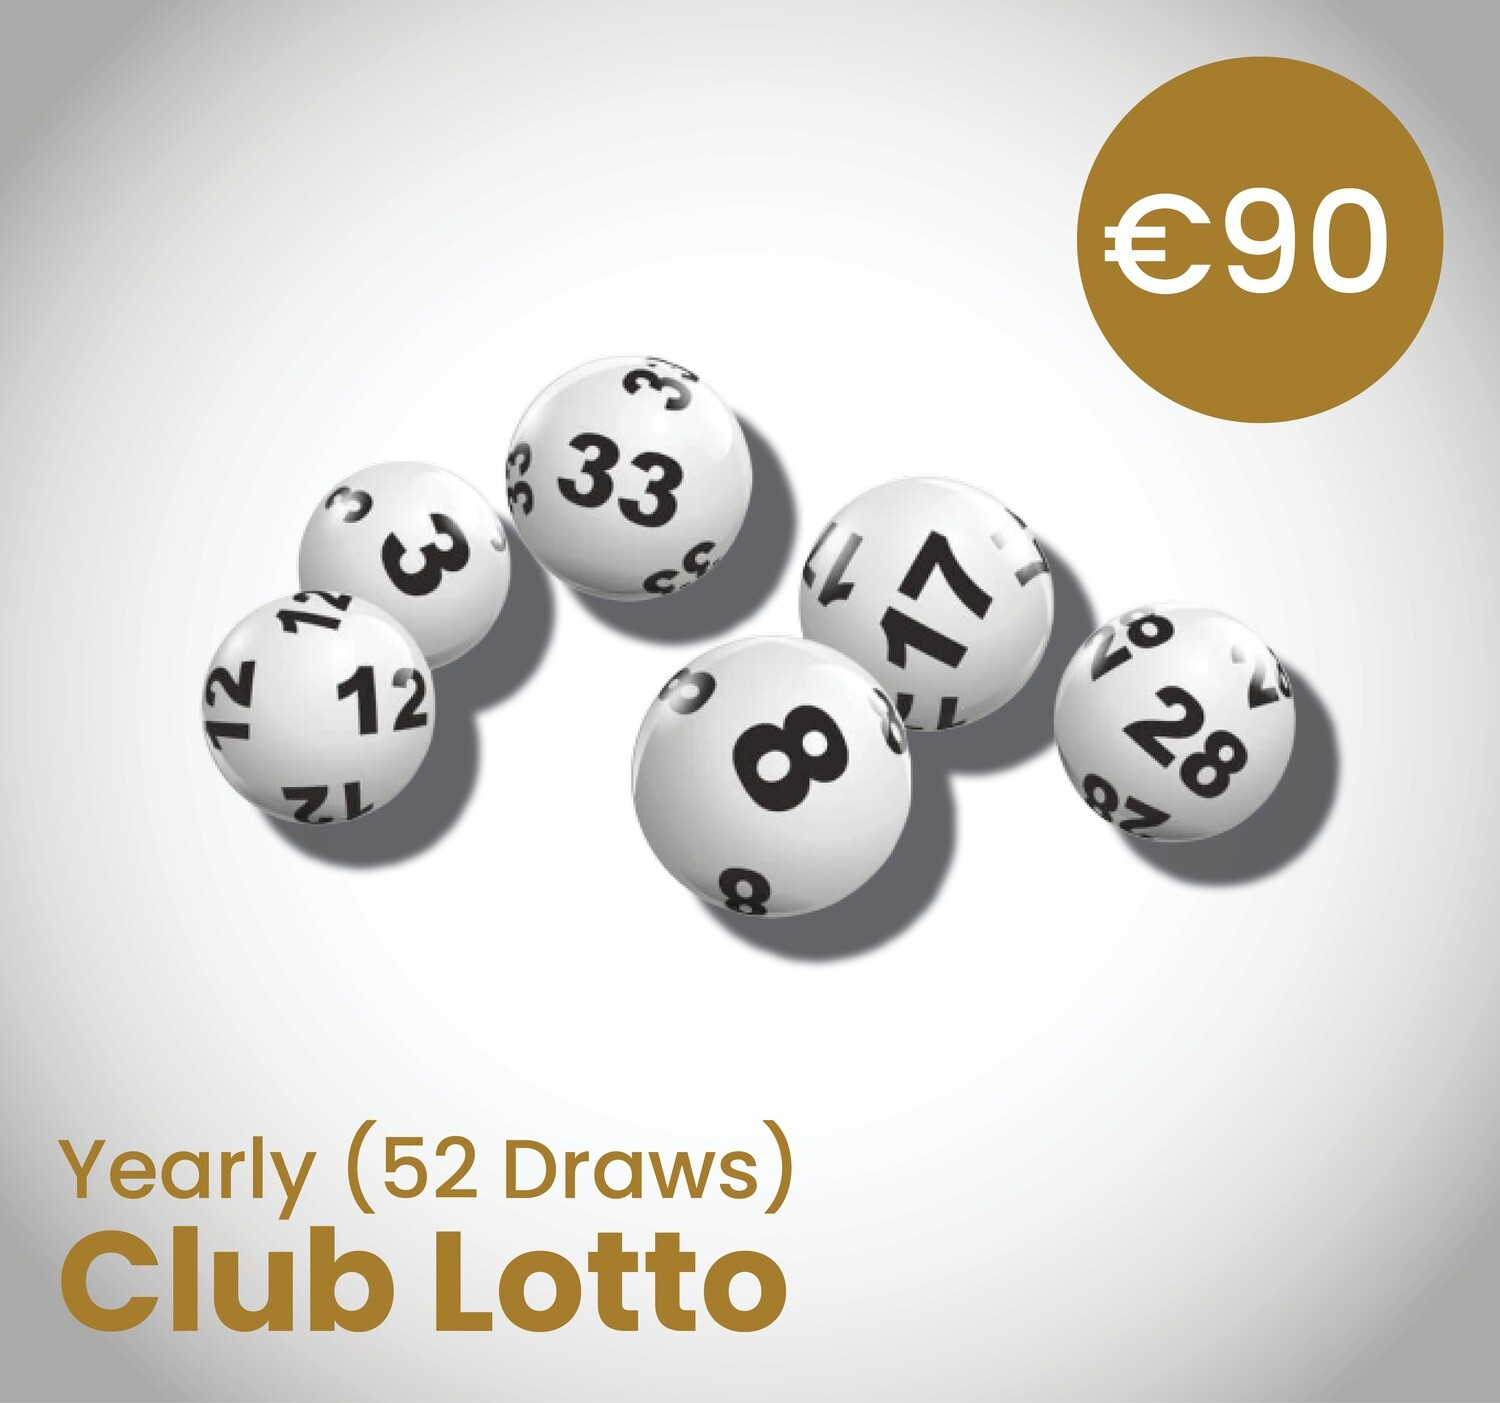 Club Lotto Yearly ( 52 Draws)